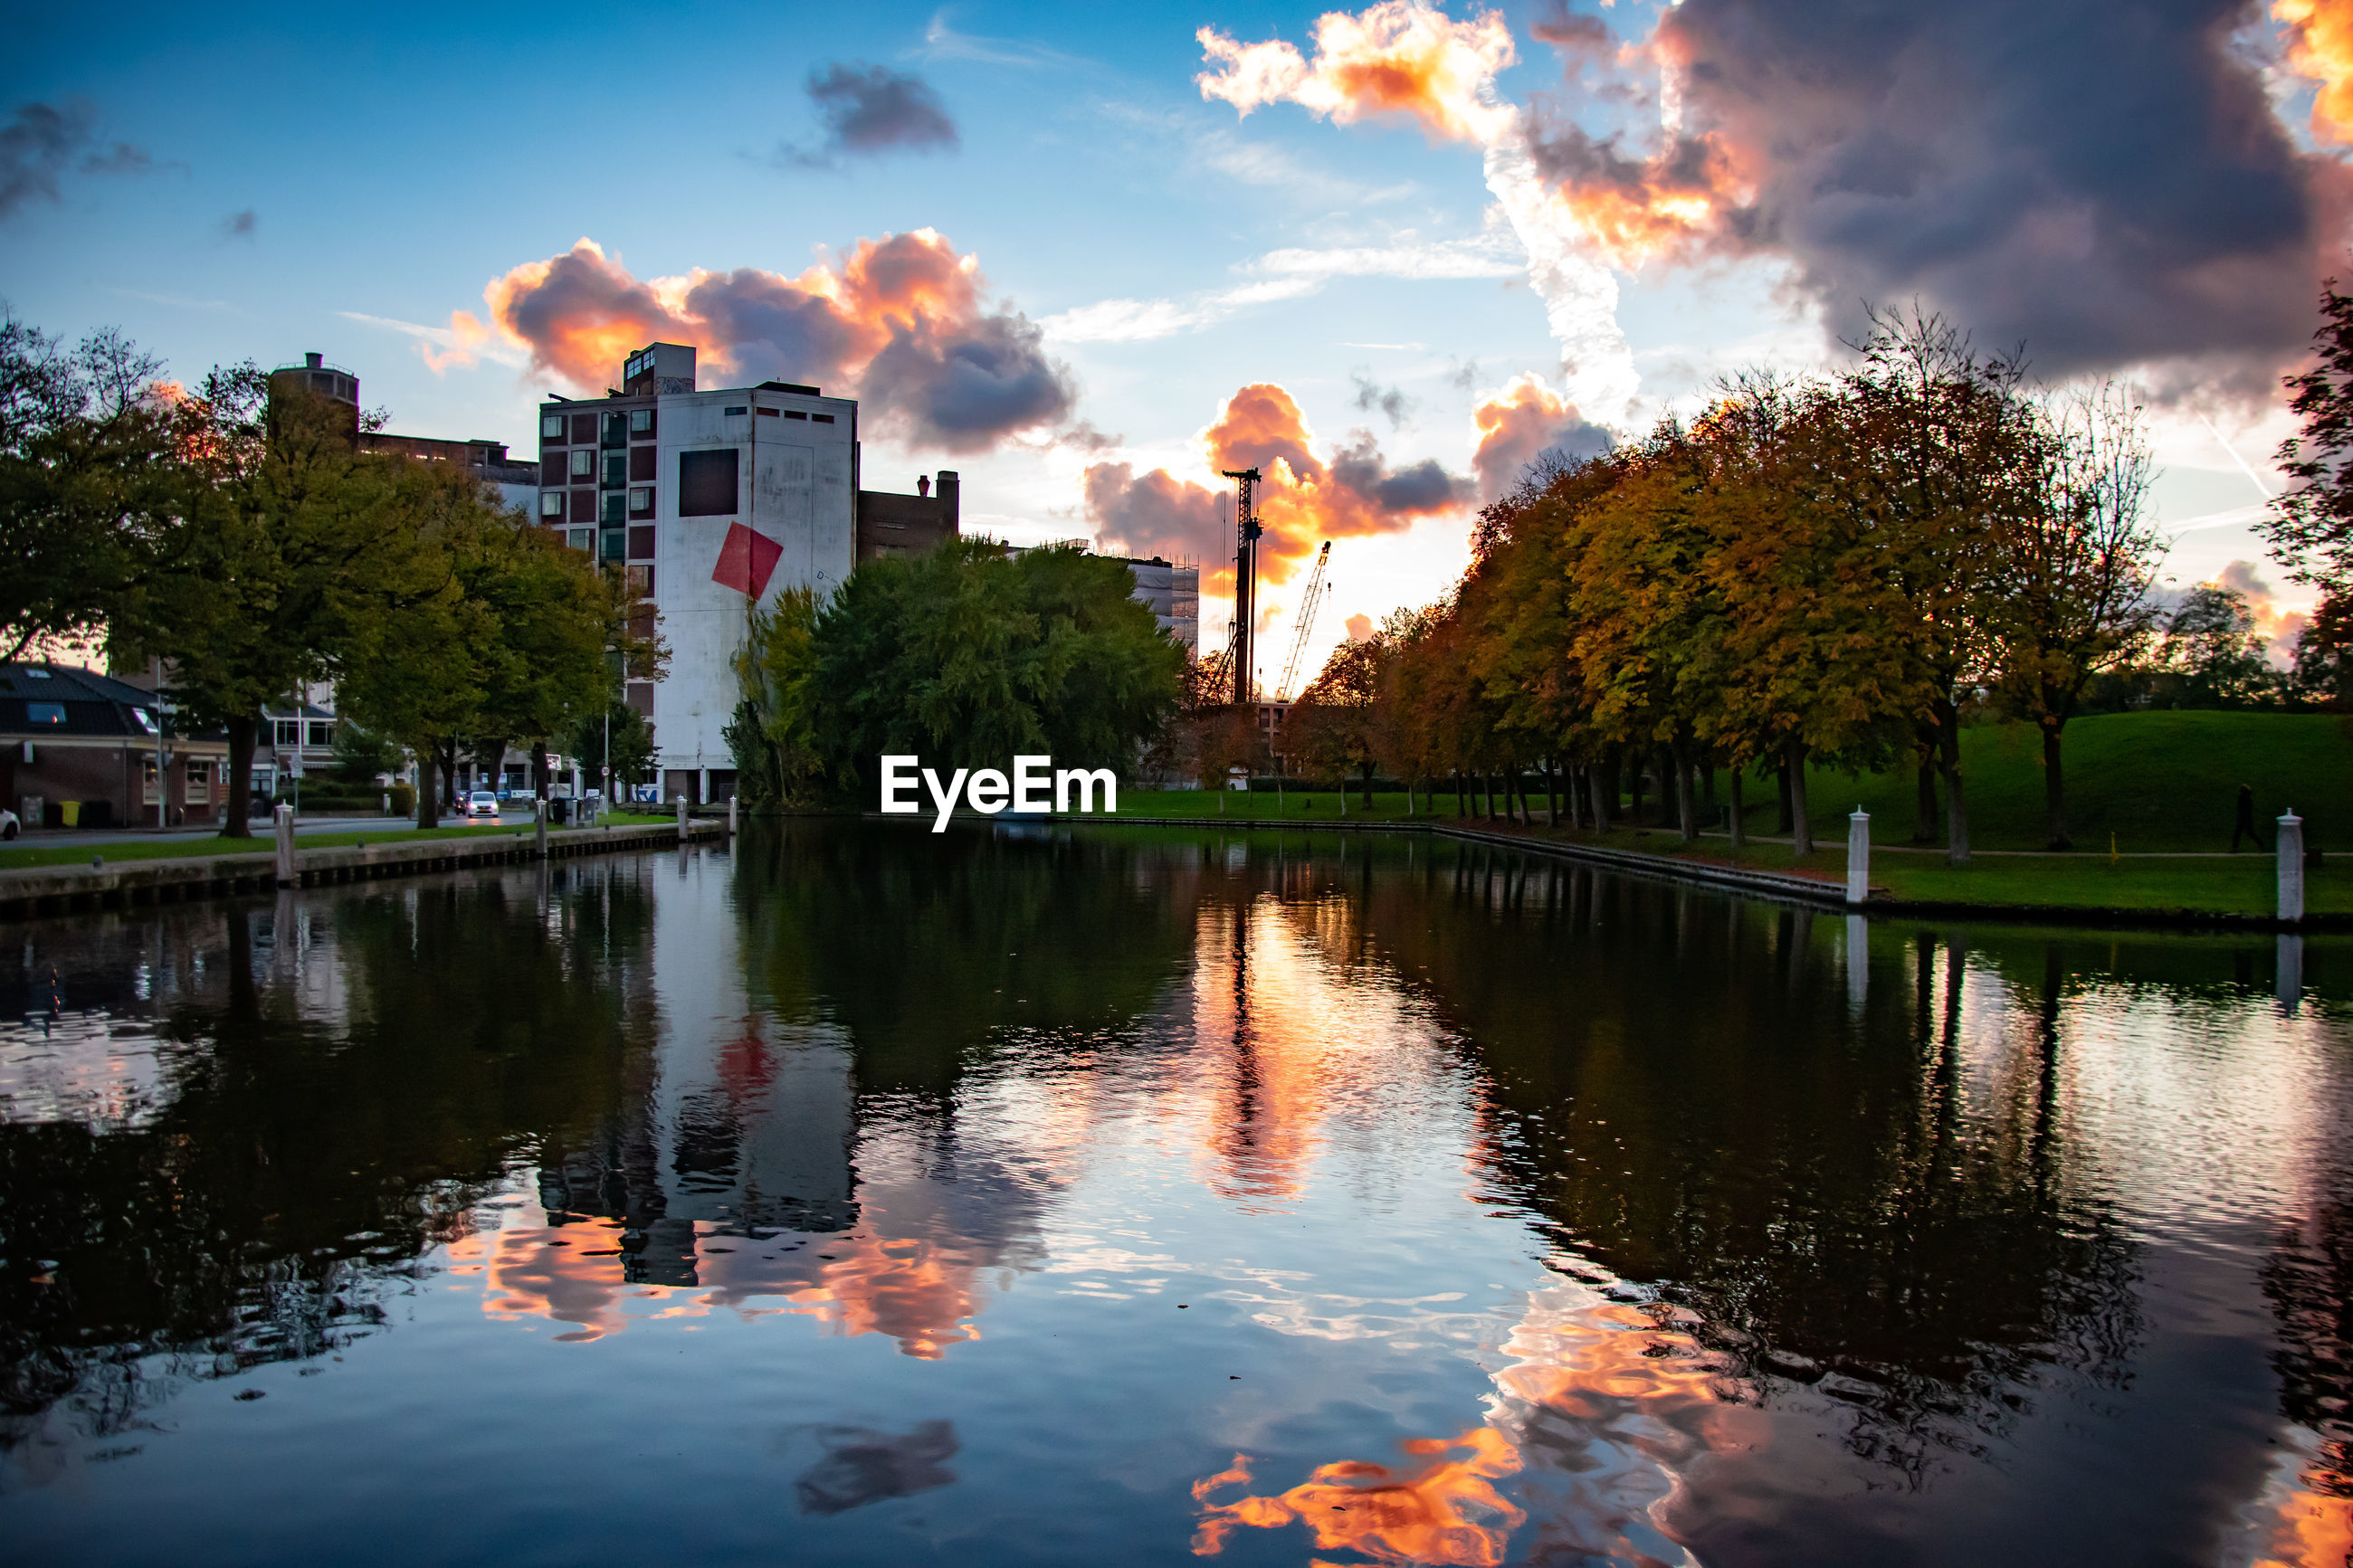 Reflection of trees and buildings in lake during sunset